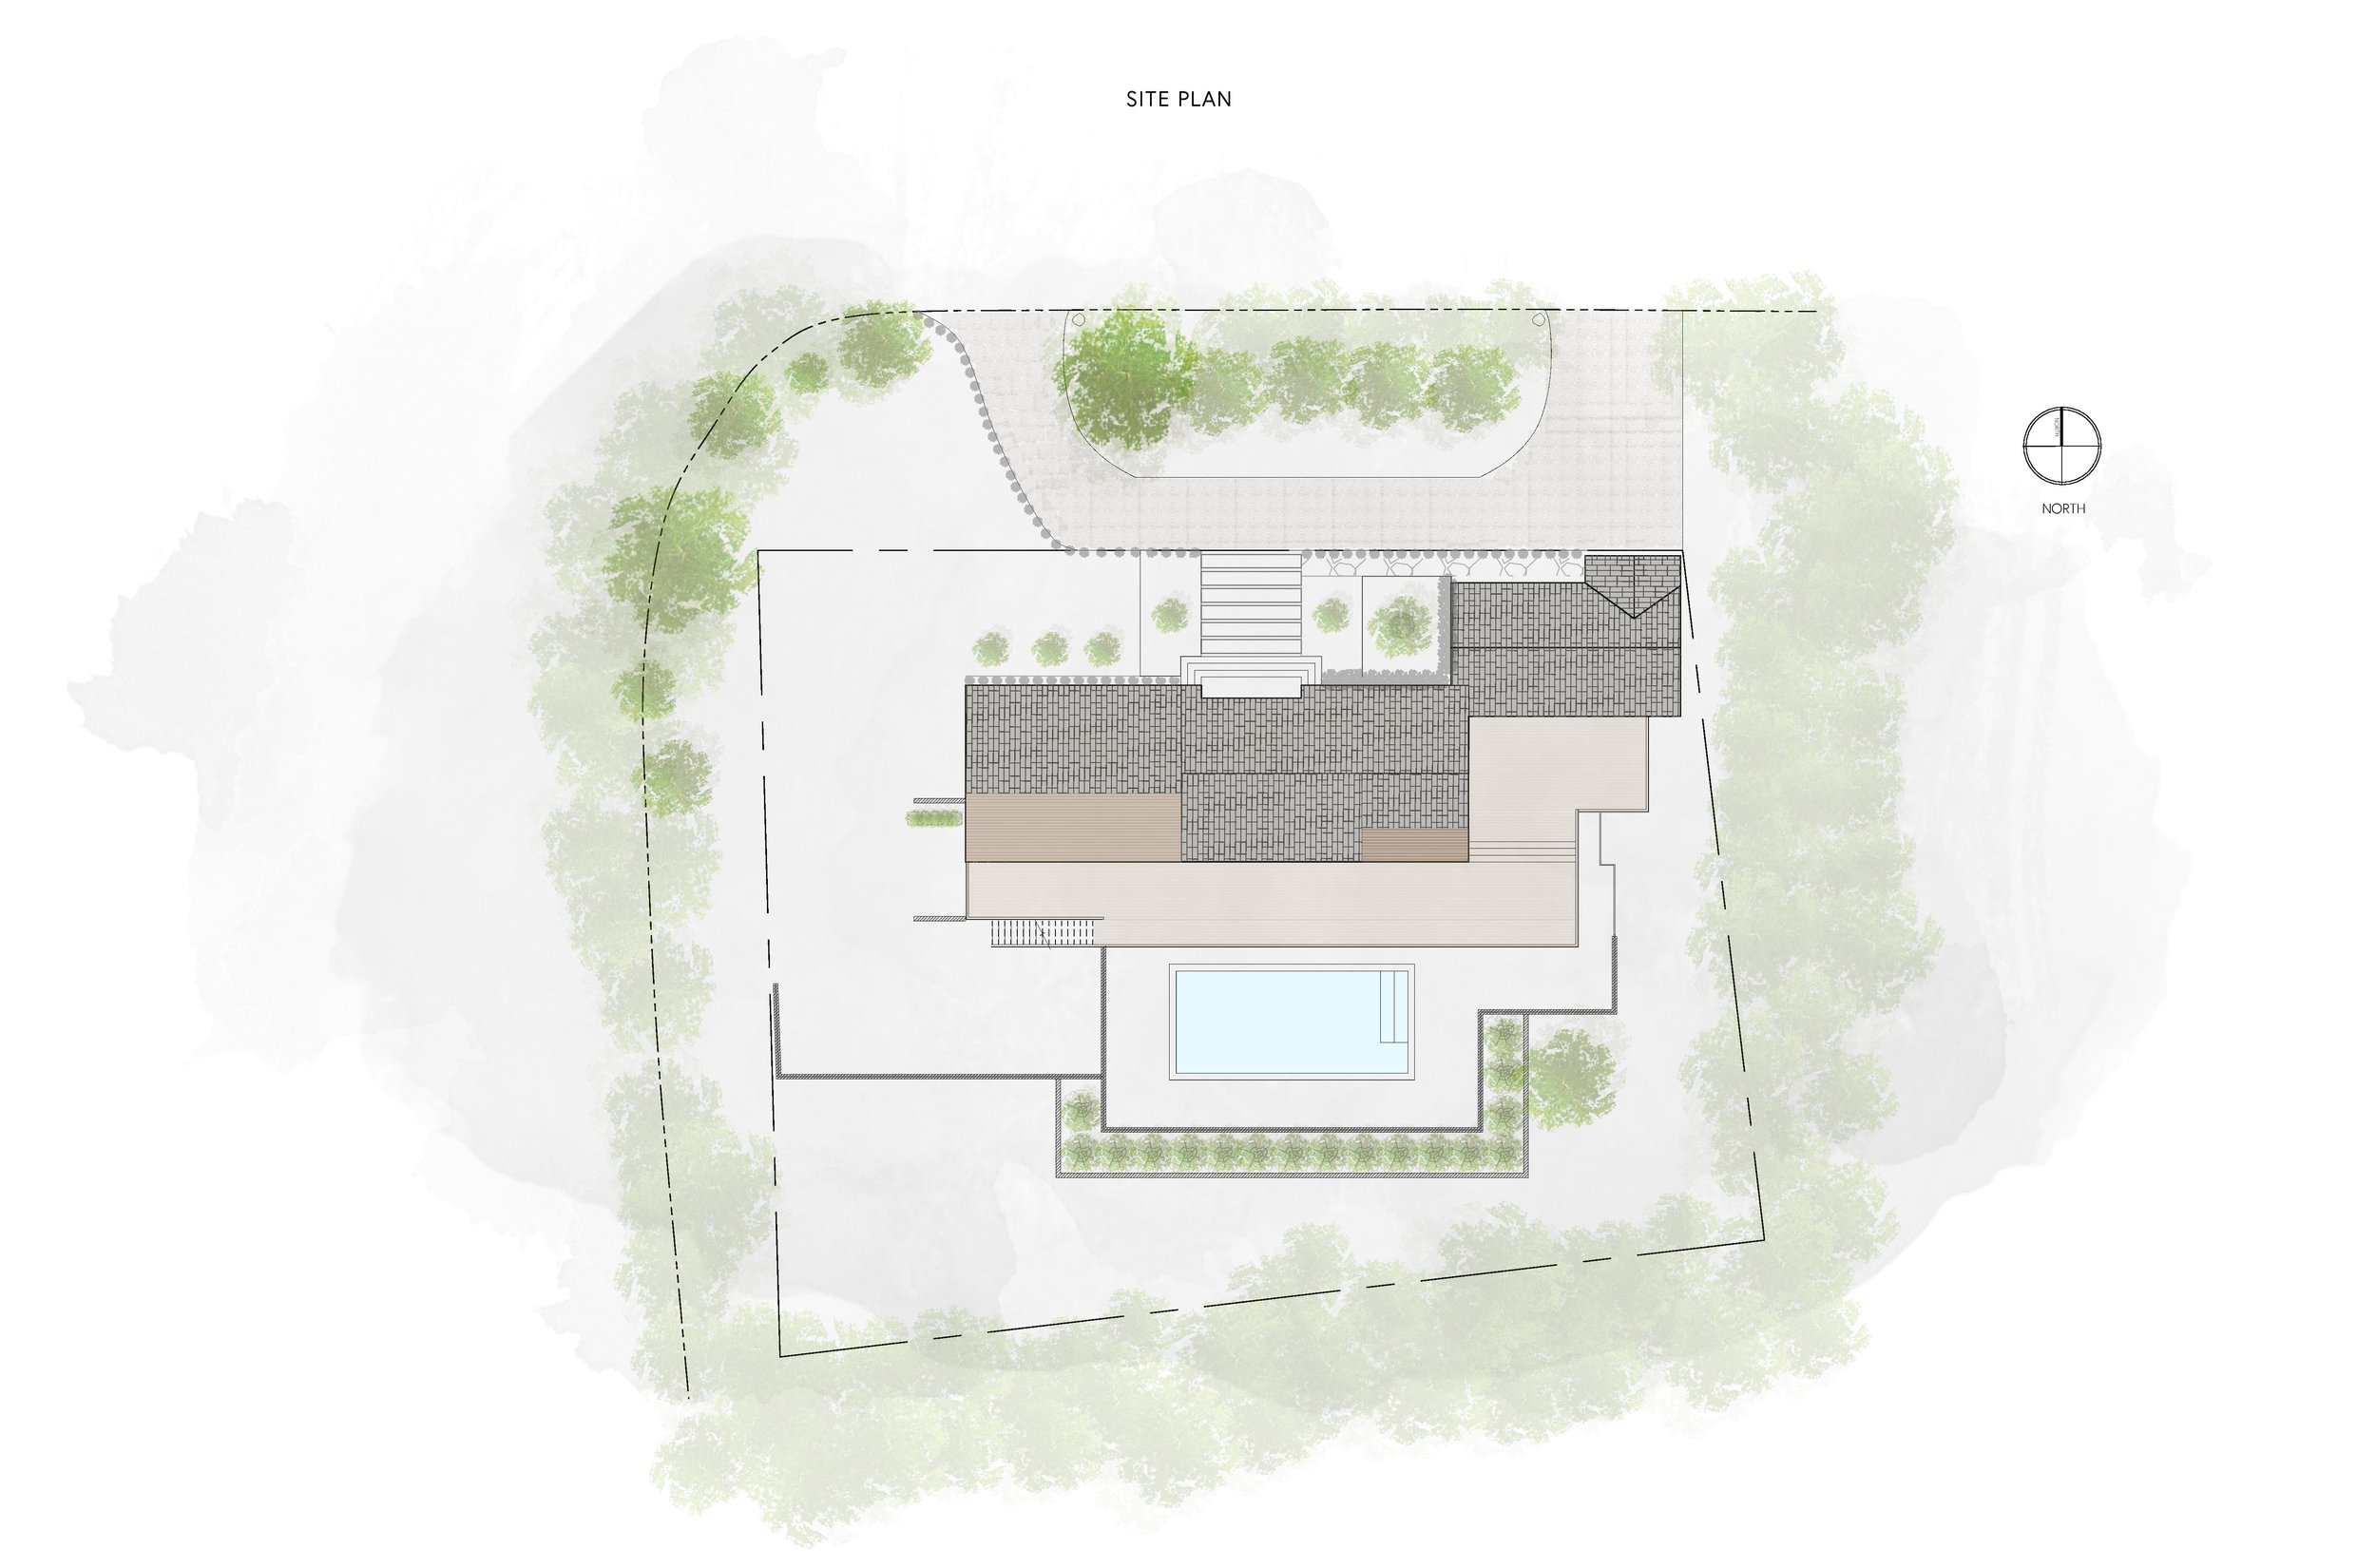 190314_Atelier by SZ Website_Atelier 211_Site Plan-compressed-page-001.jpg